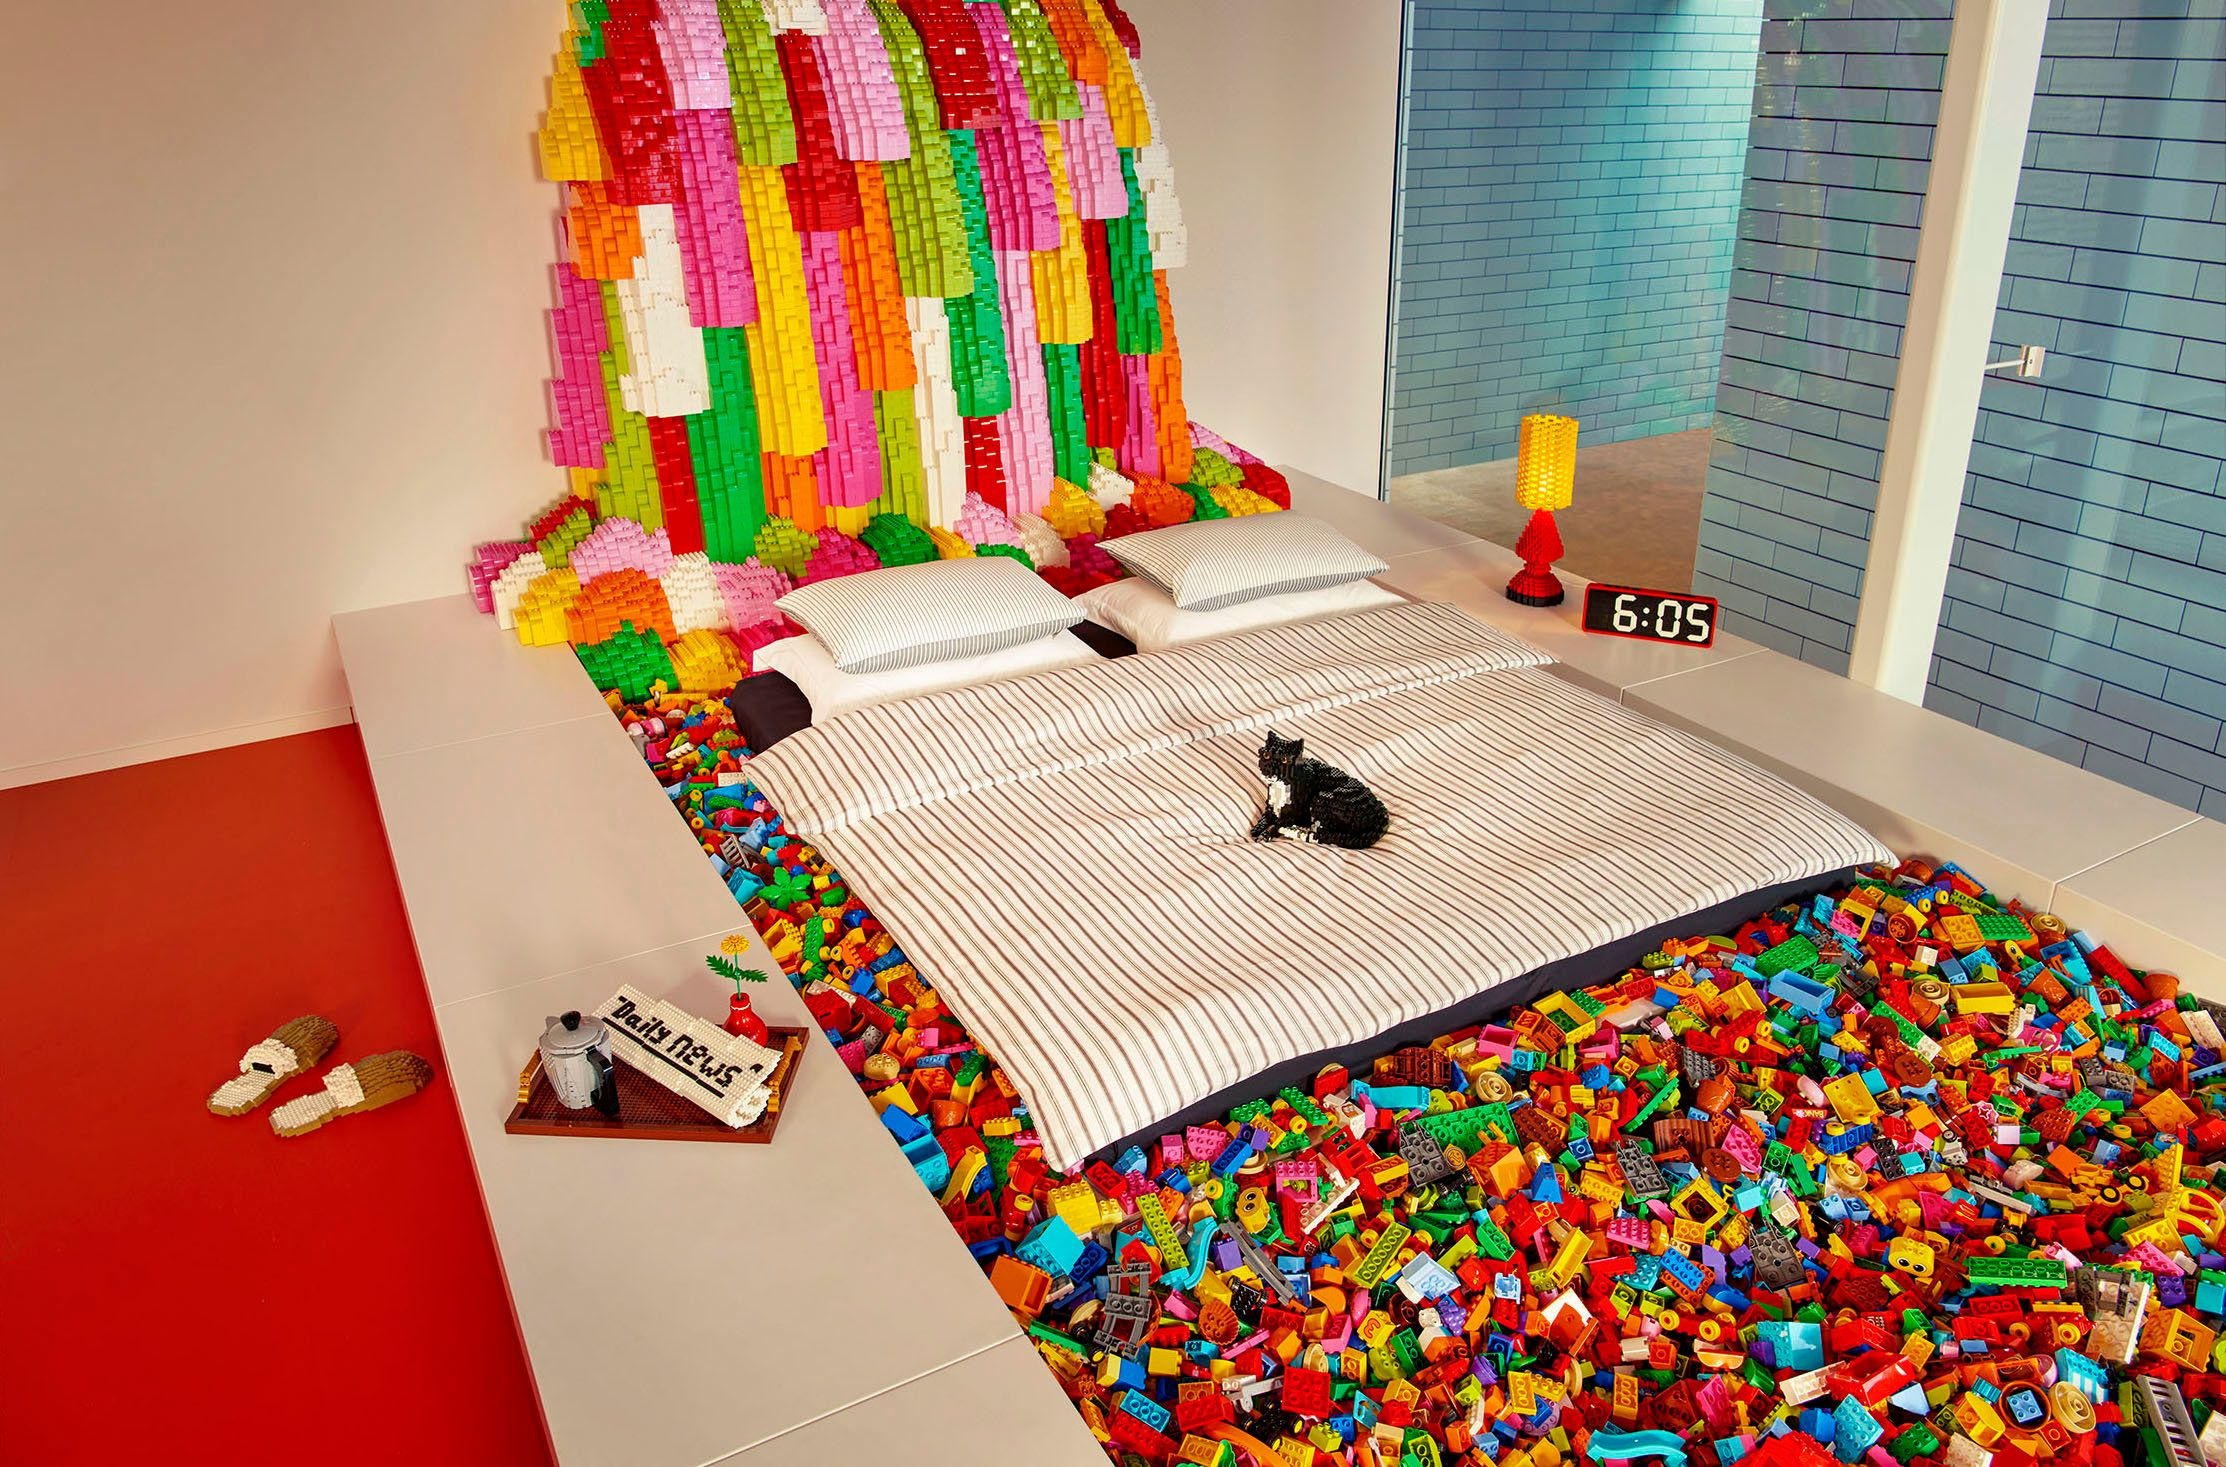 There's A Life-Sized Lego House And You Could Stay There For Free